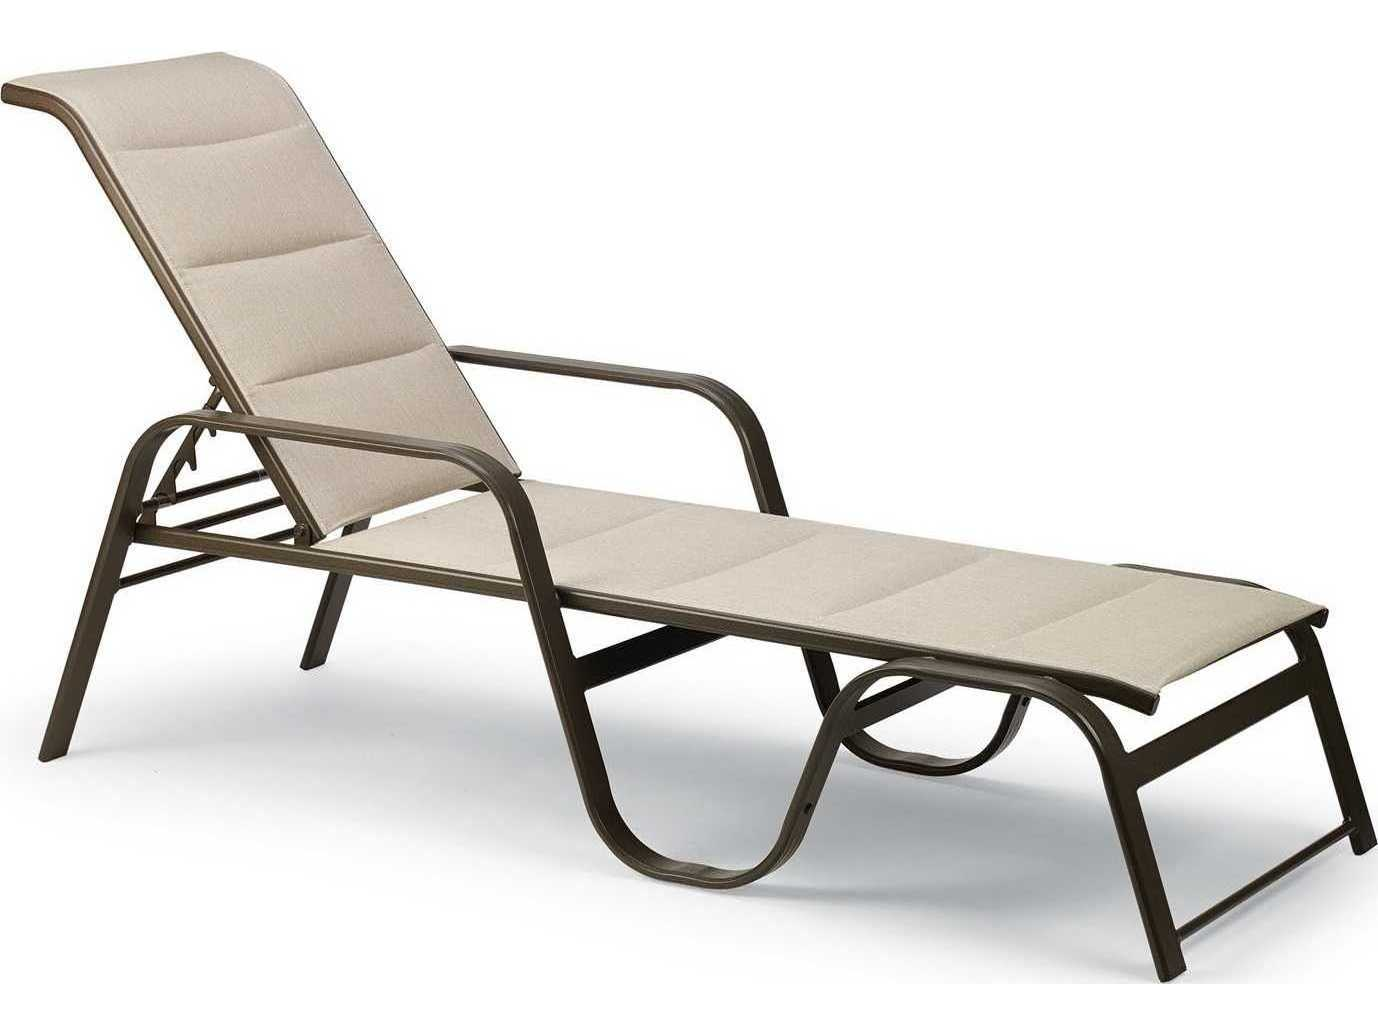 Winston Palazzo Sling Cast Aluminum Arm Chaise Lounge: Winston Key West Padded Sling Aluminum Stackable Chaise